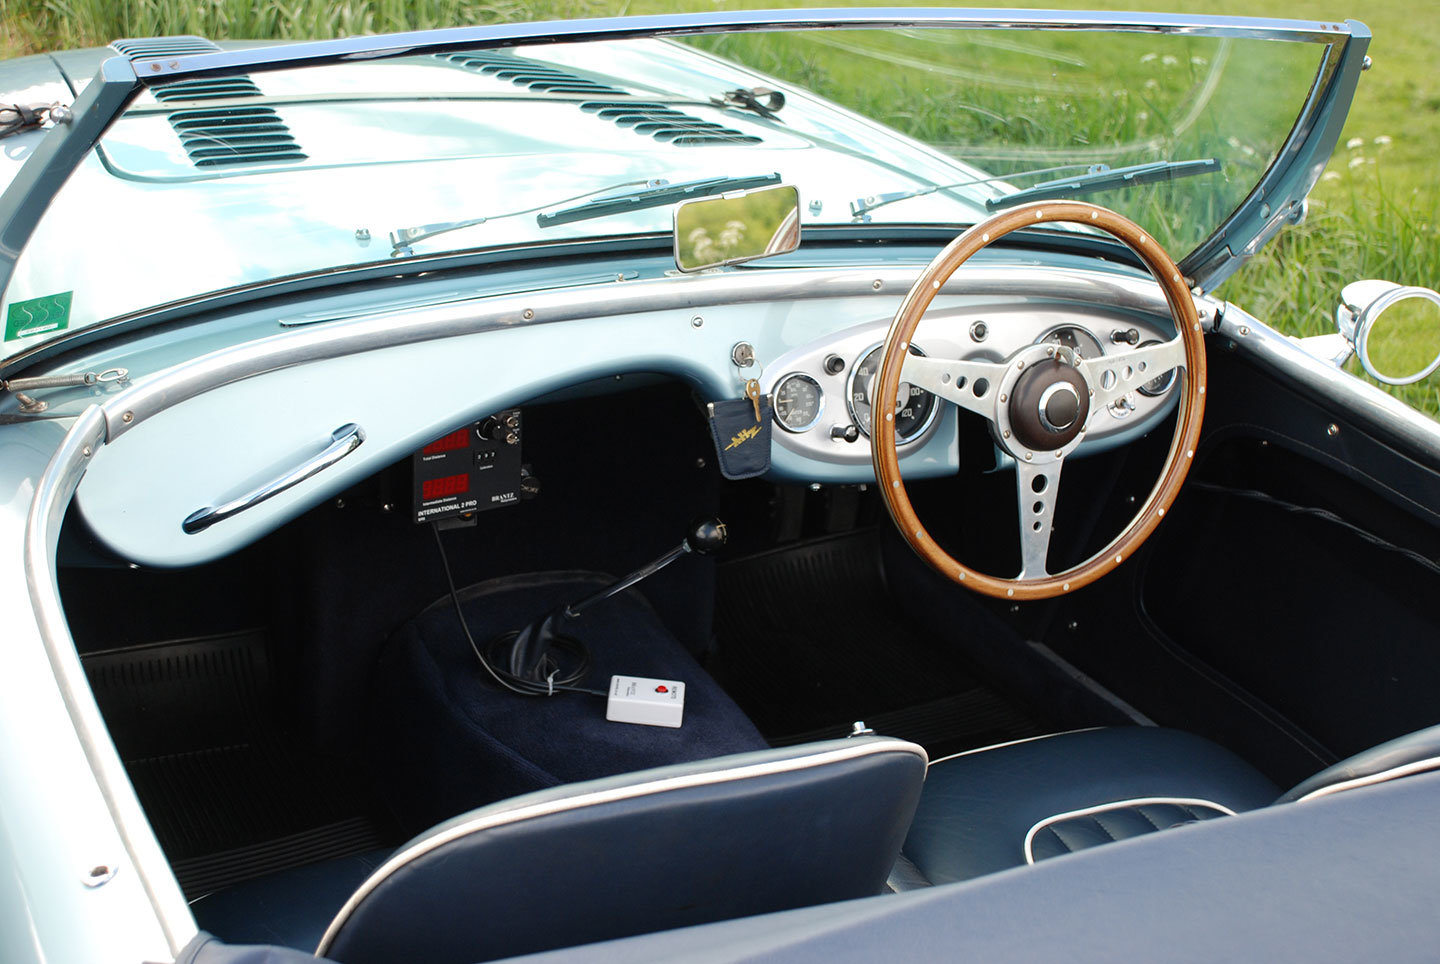 1955 Austin Healey 100/4 BN2 M Specification For Sale (picture 8 of 10)